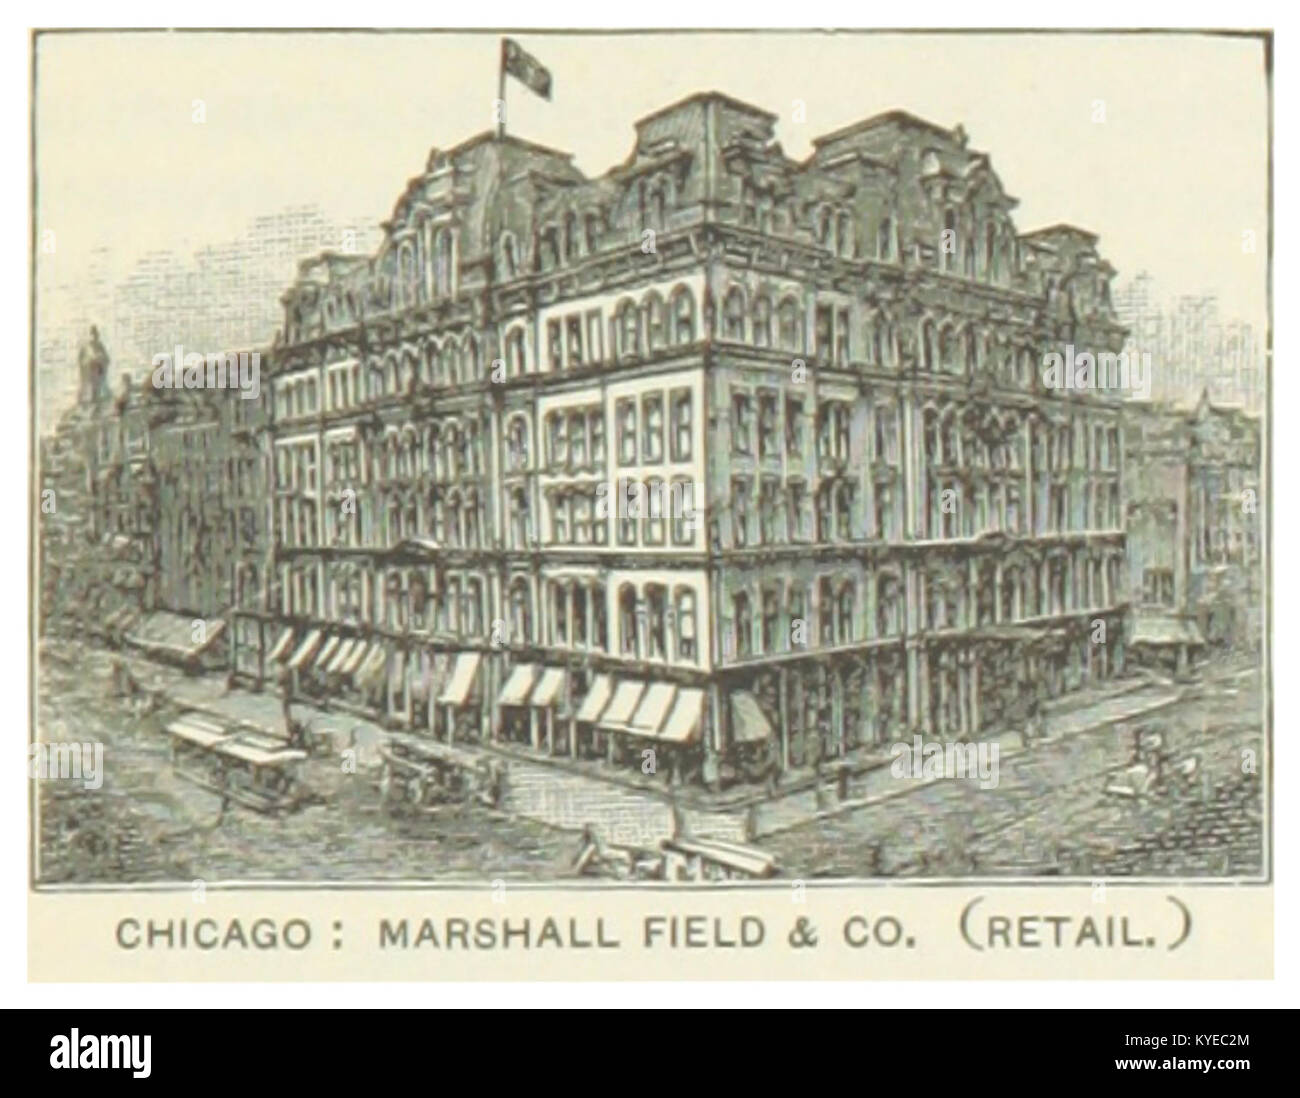 US-IL(1891) p229 CHICAGO, MARSHALL FIELD & COMPANY - RETAIL - Stock Image